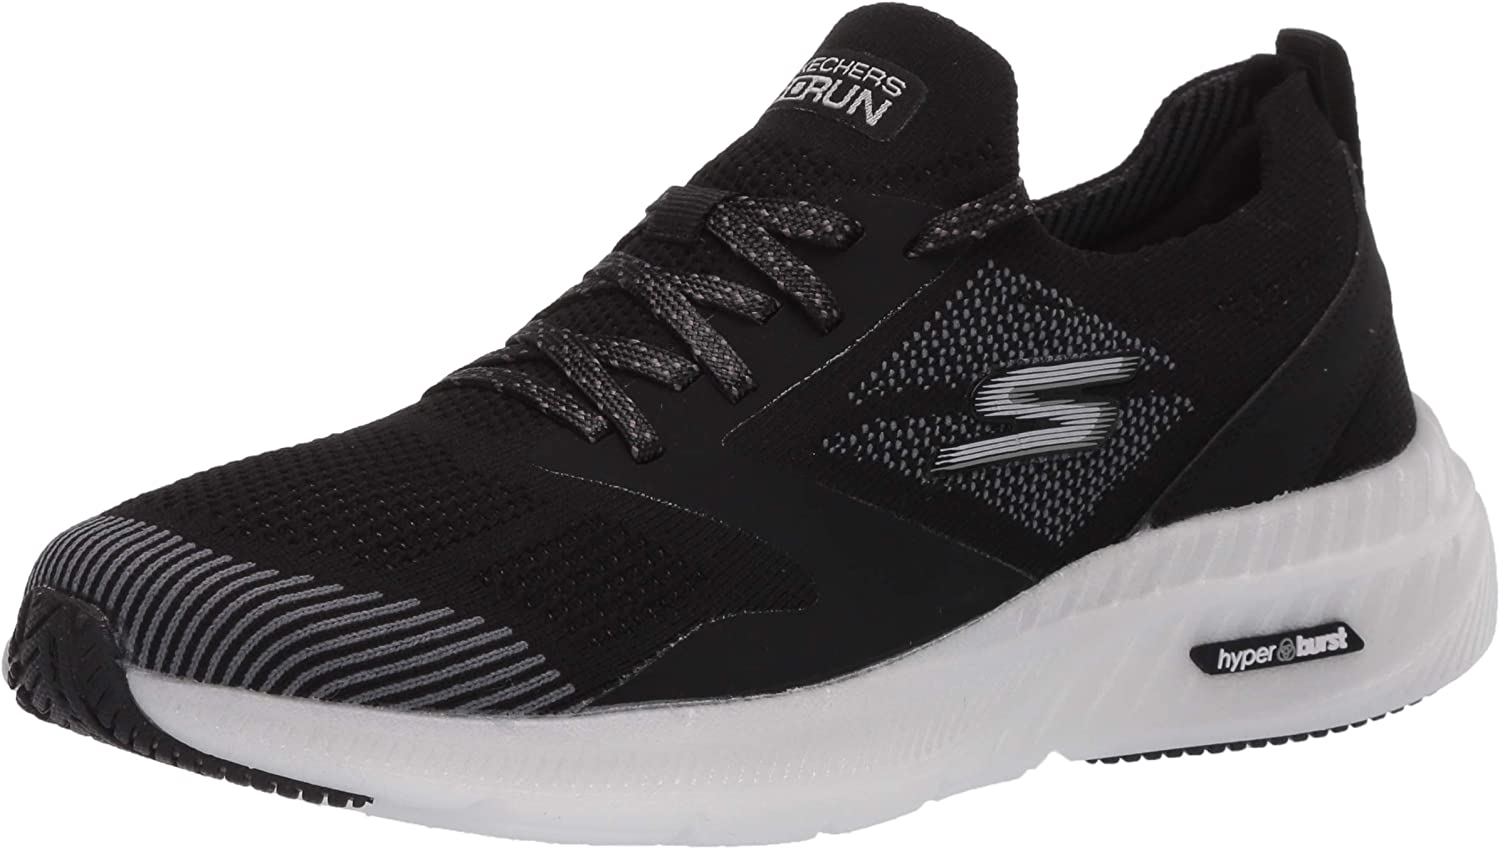 Skechers Women's ! Super beauty product restock quality top! Go Limited Special Price Sneaker Run Smart